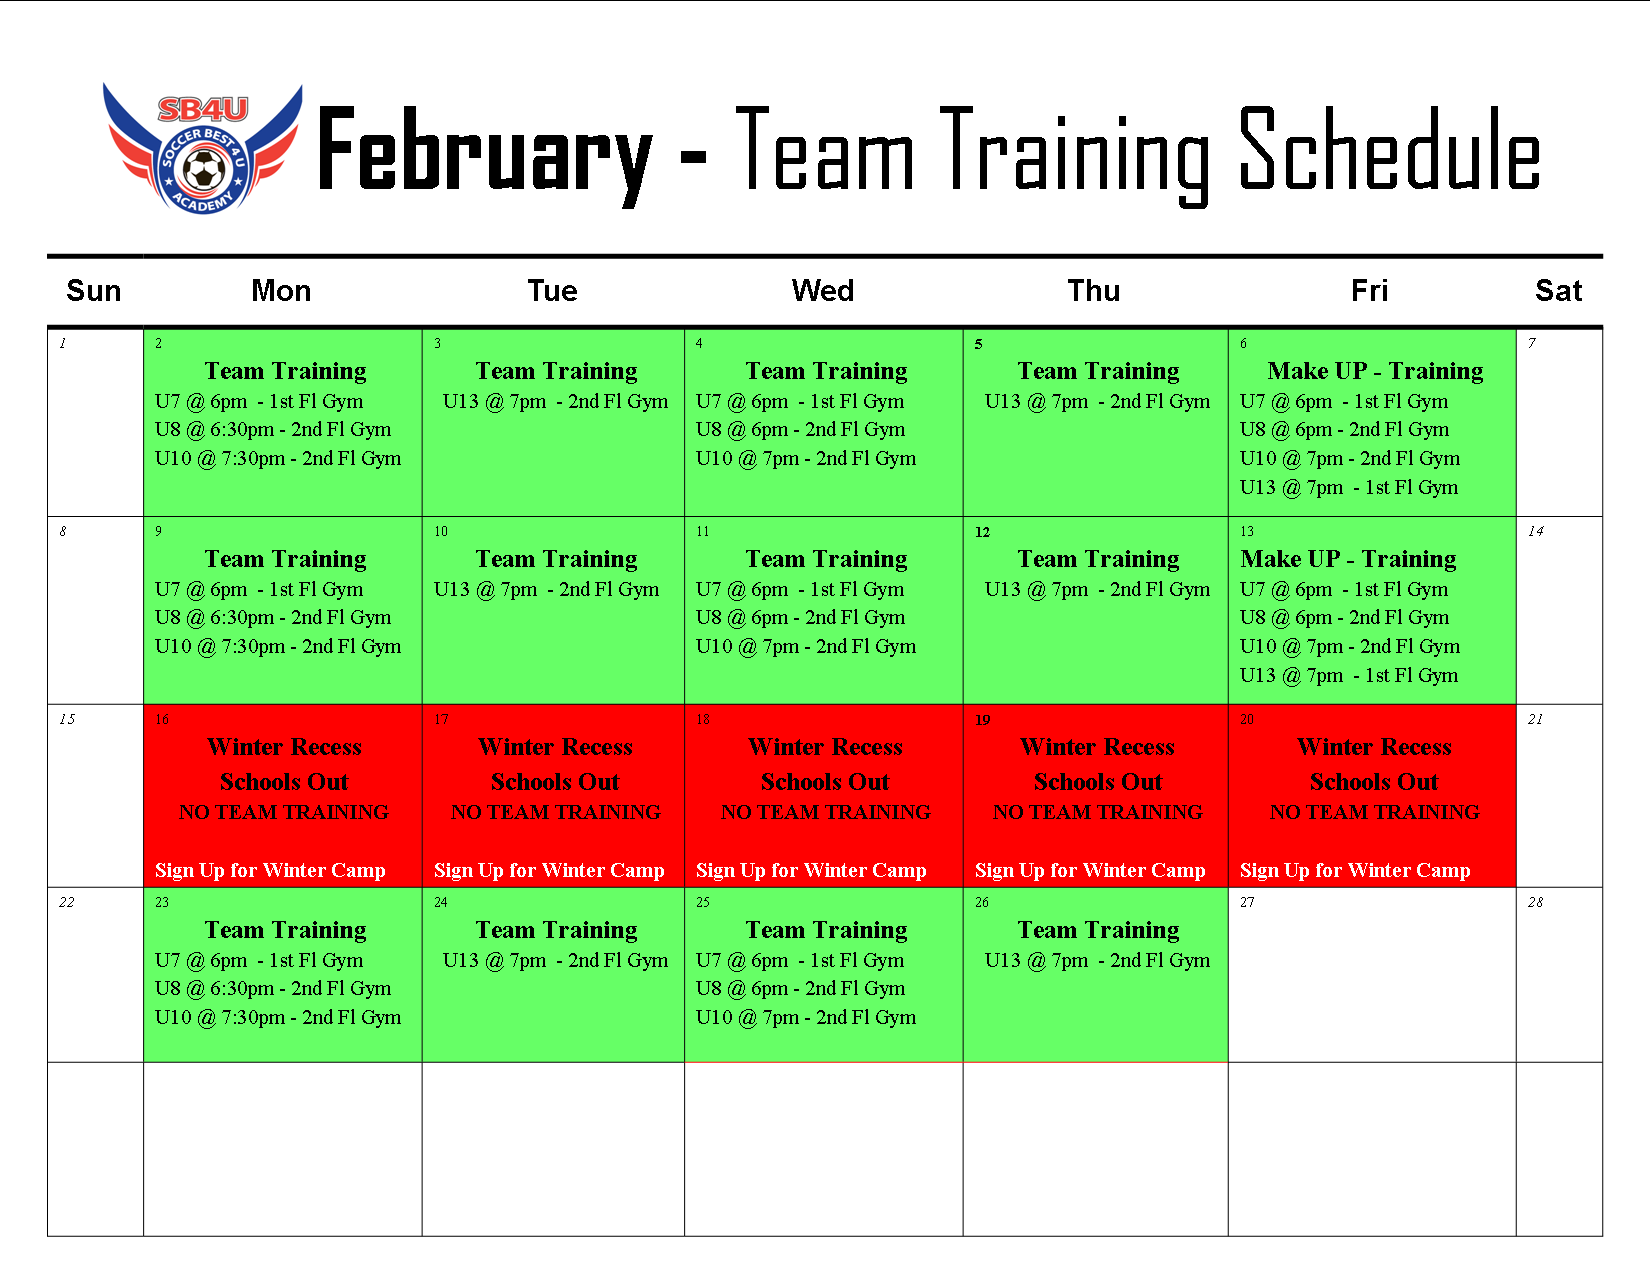 February Team Training Calendar - Updated